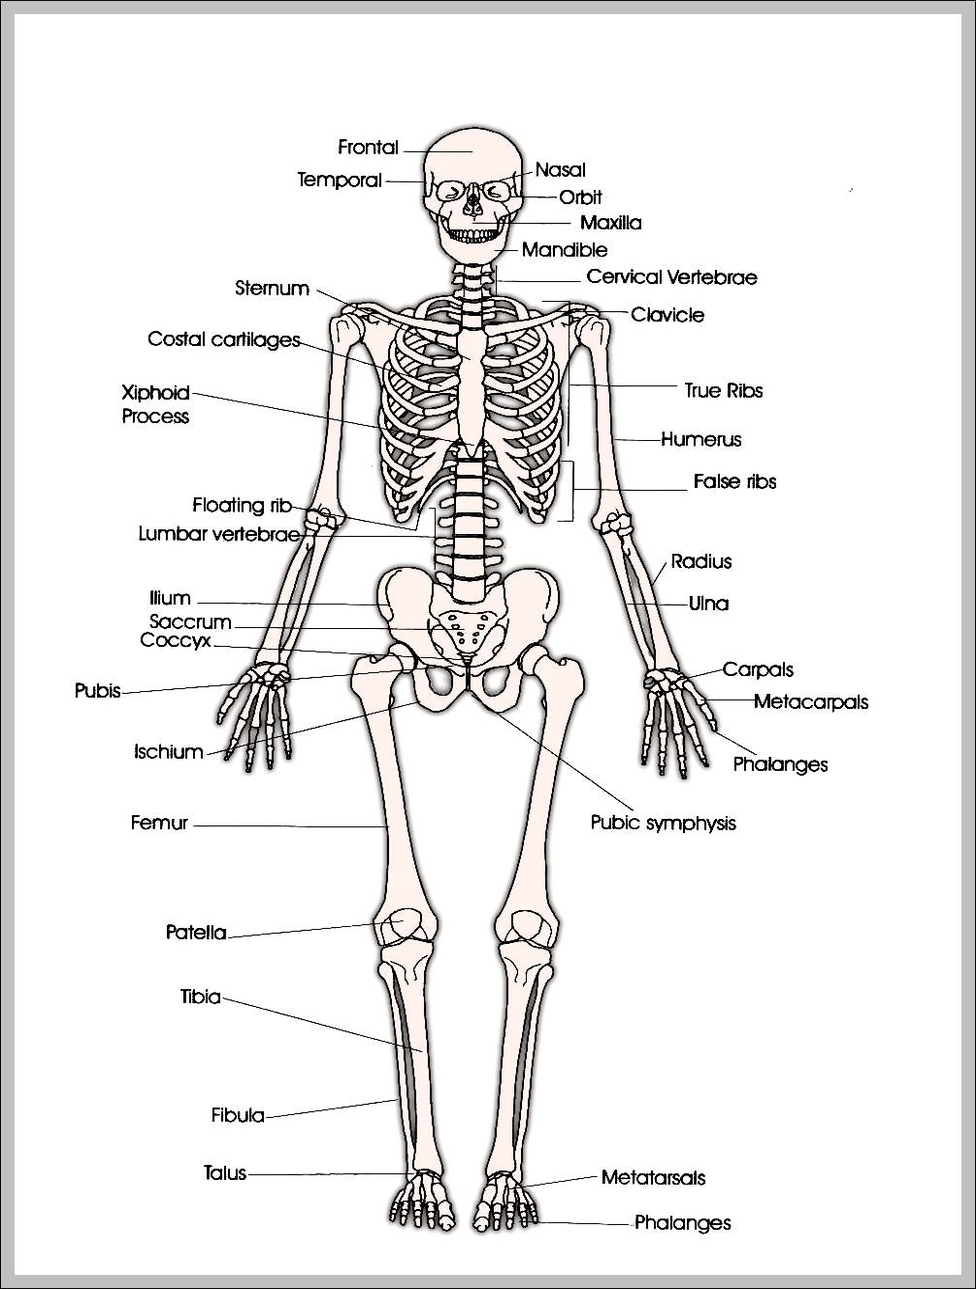 Human Body Bones Diagram House Wiring Diagram Symbols